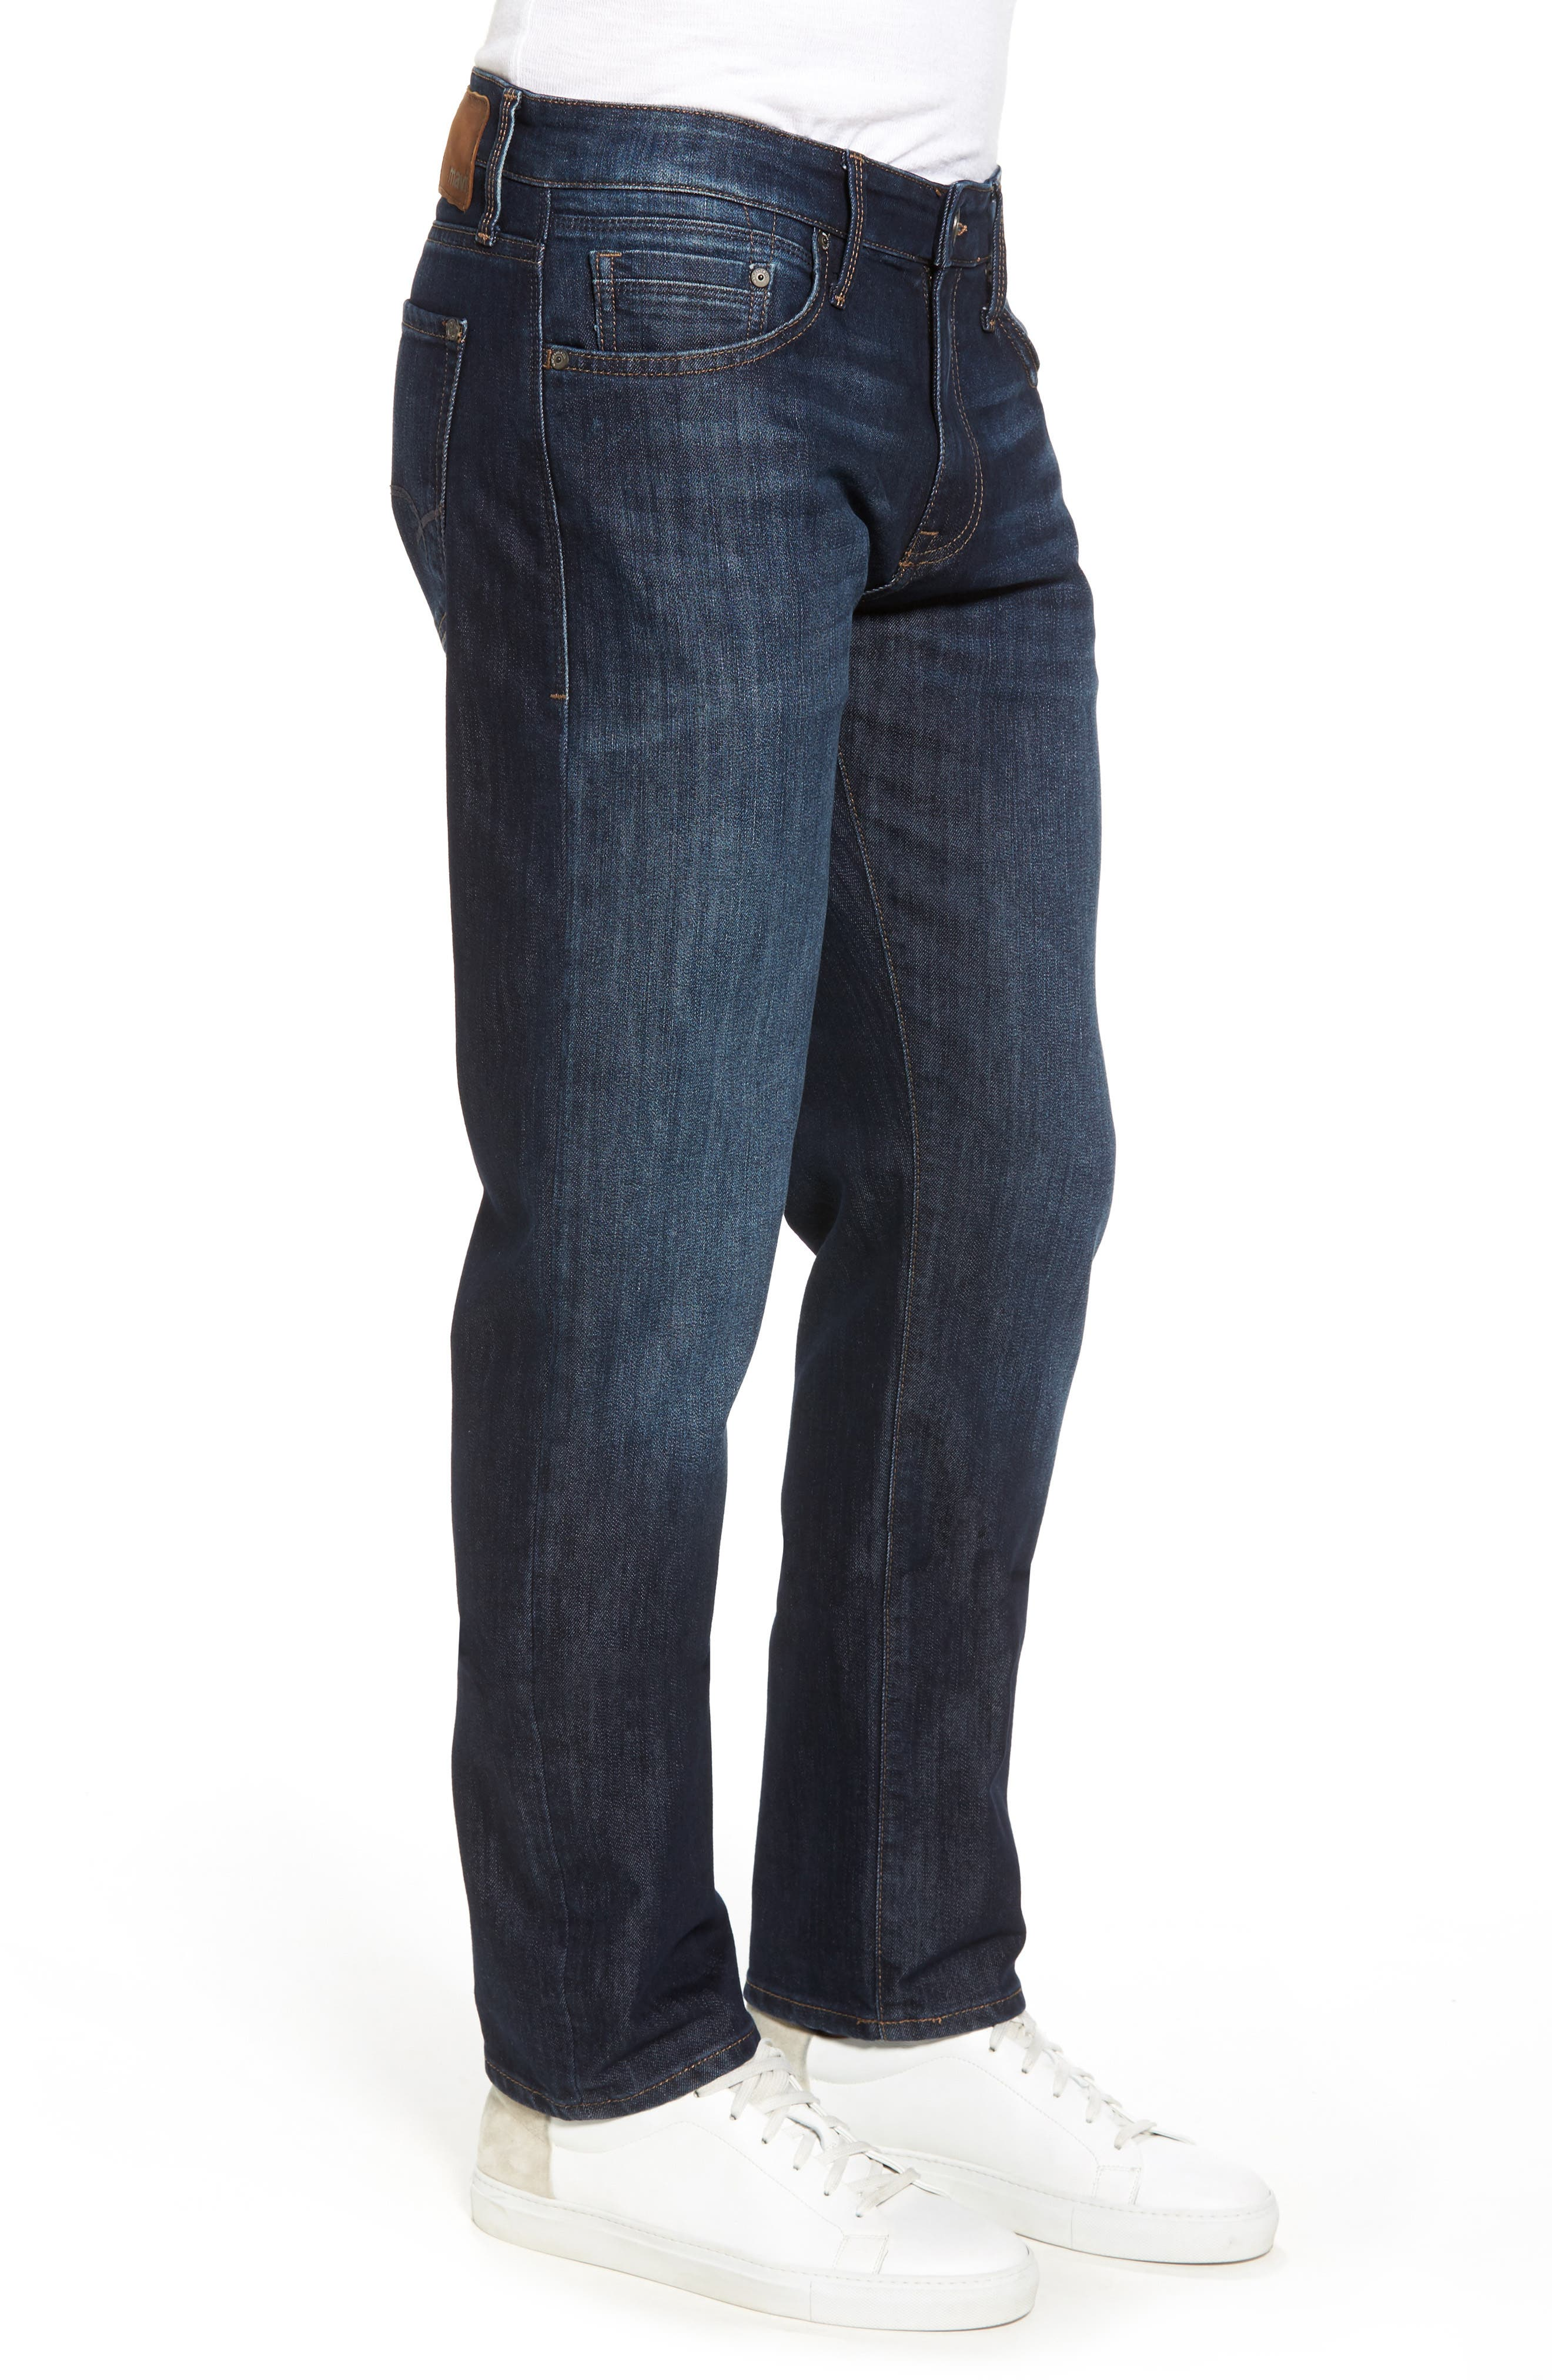 Zach Straight Leg Jeans,                             Alternate thumbnail 3, color,                             Rinse Stanford